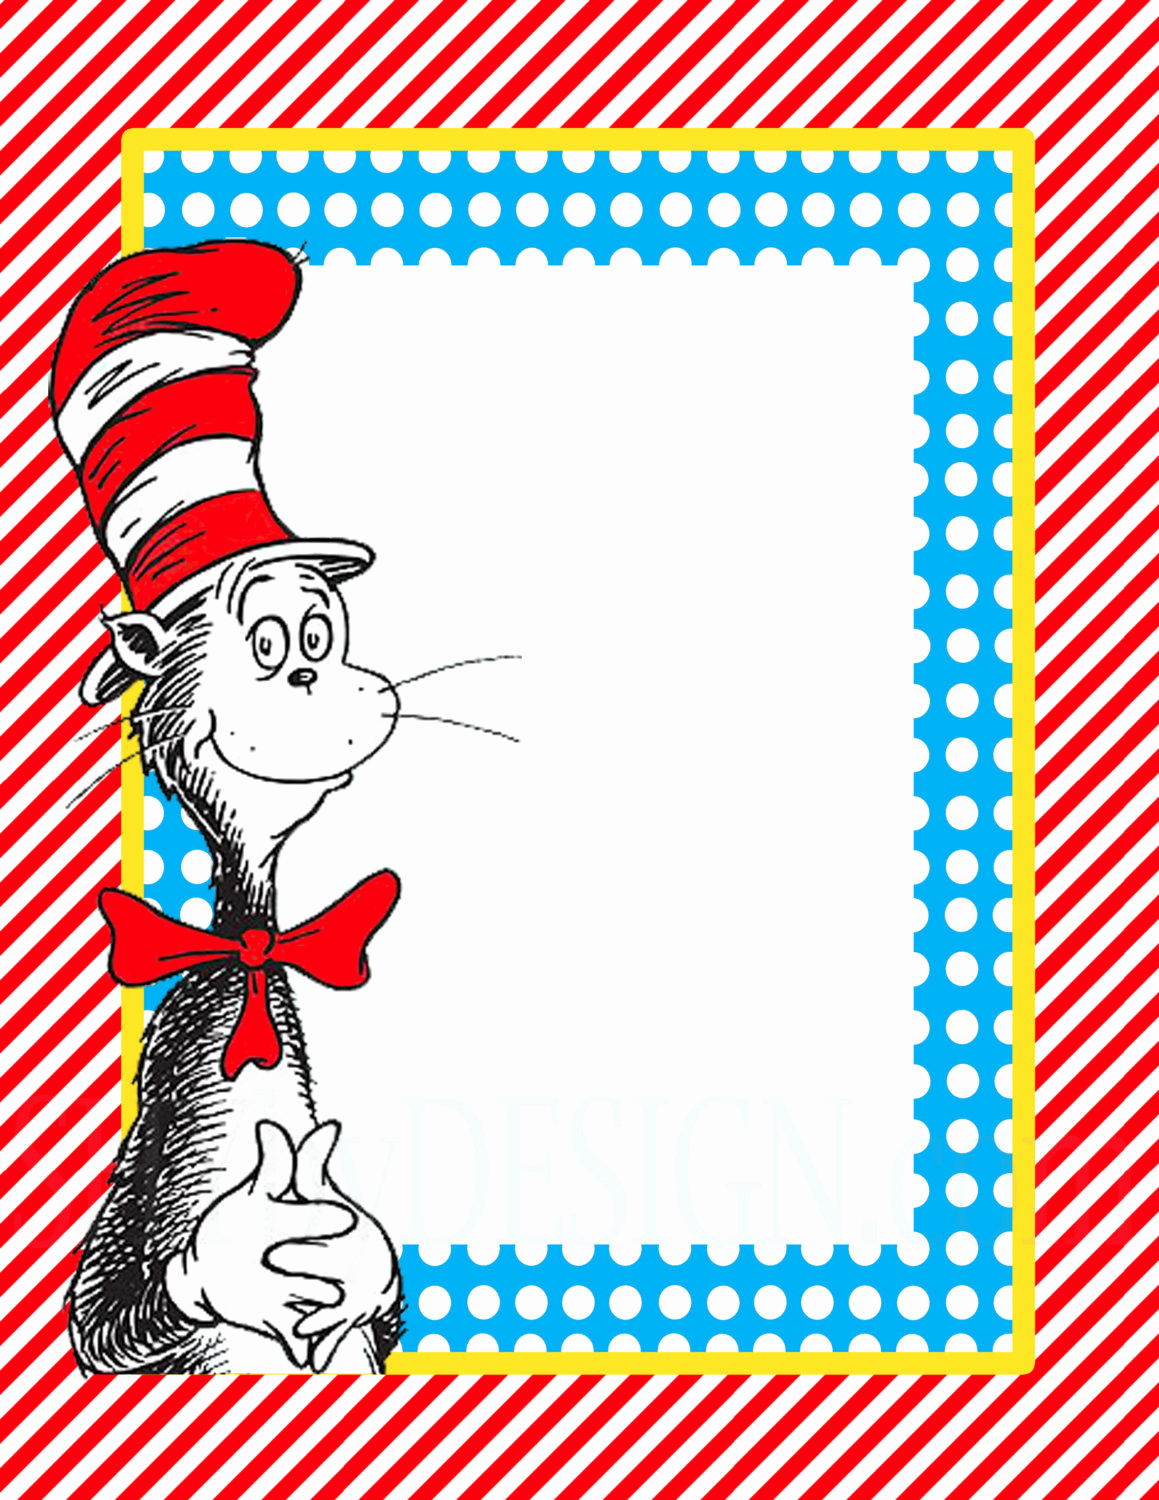 Free Printable Sign Templates Awesome 3 Diy Printable Dr Seuss Sign Templates